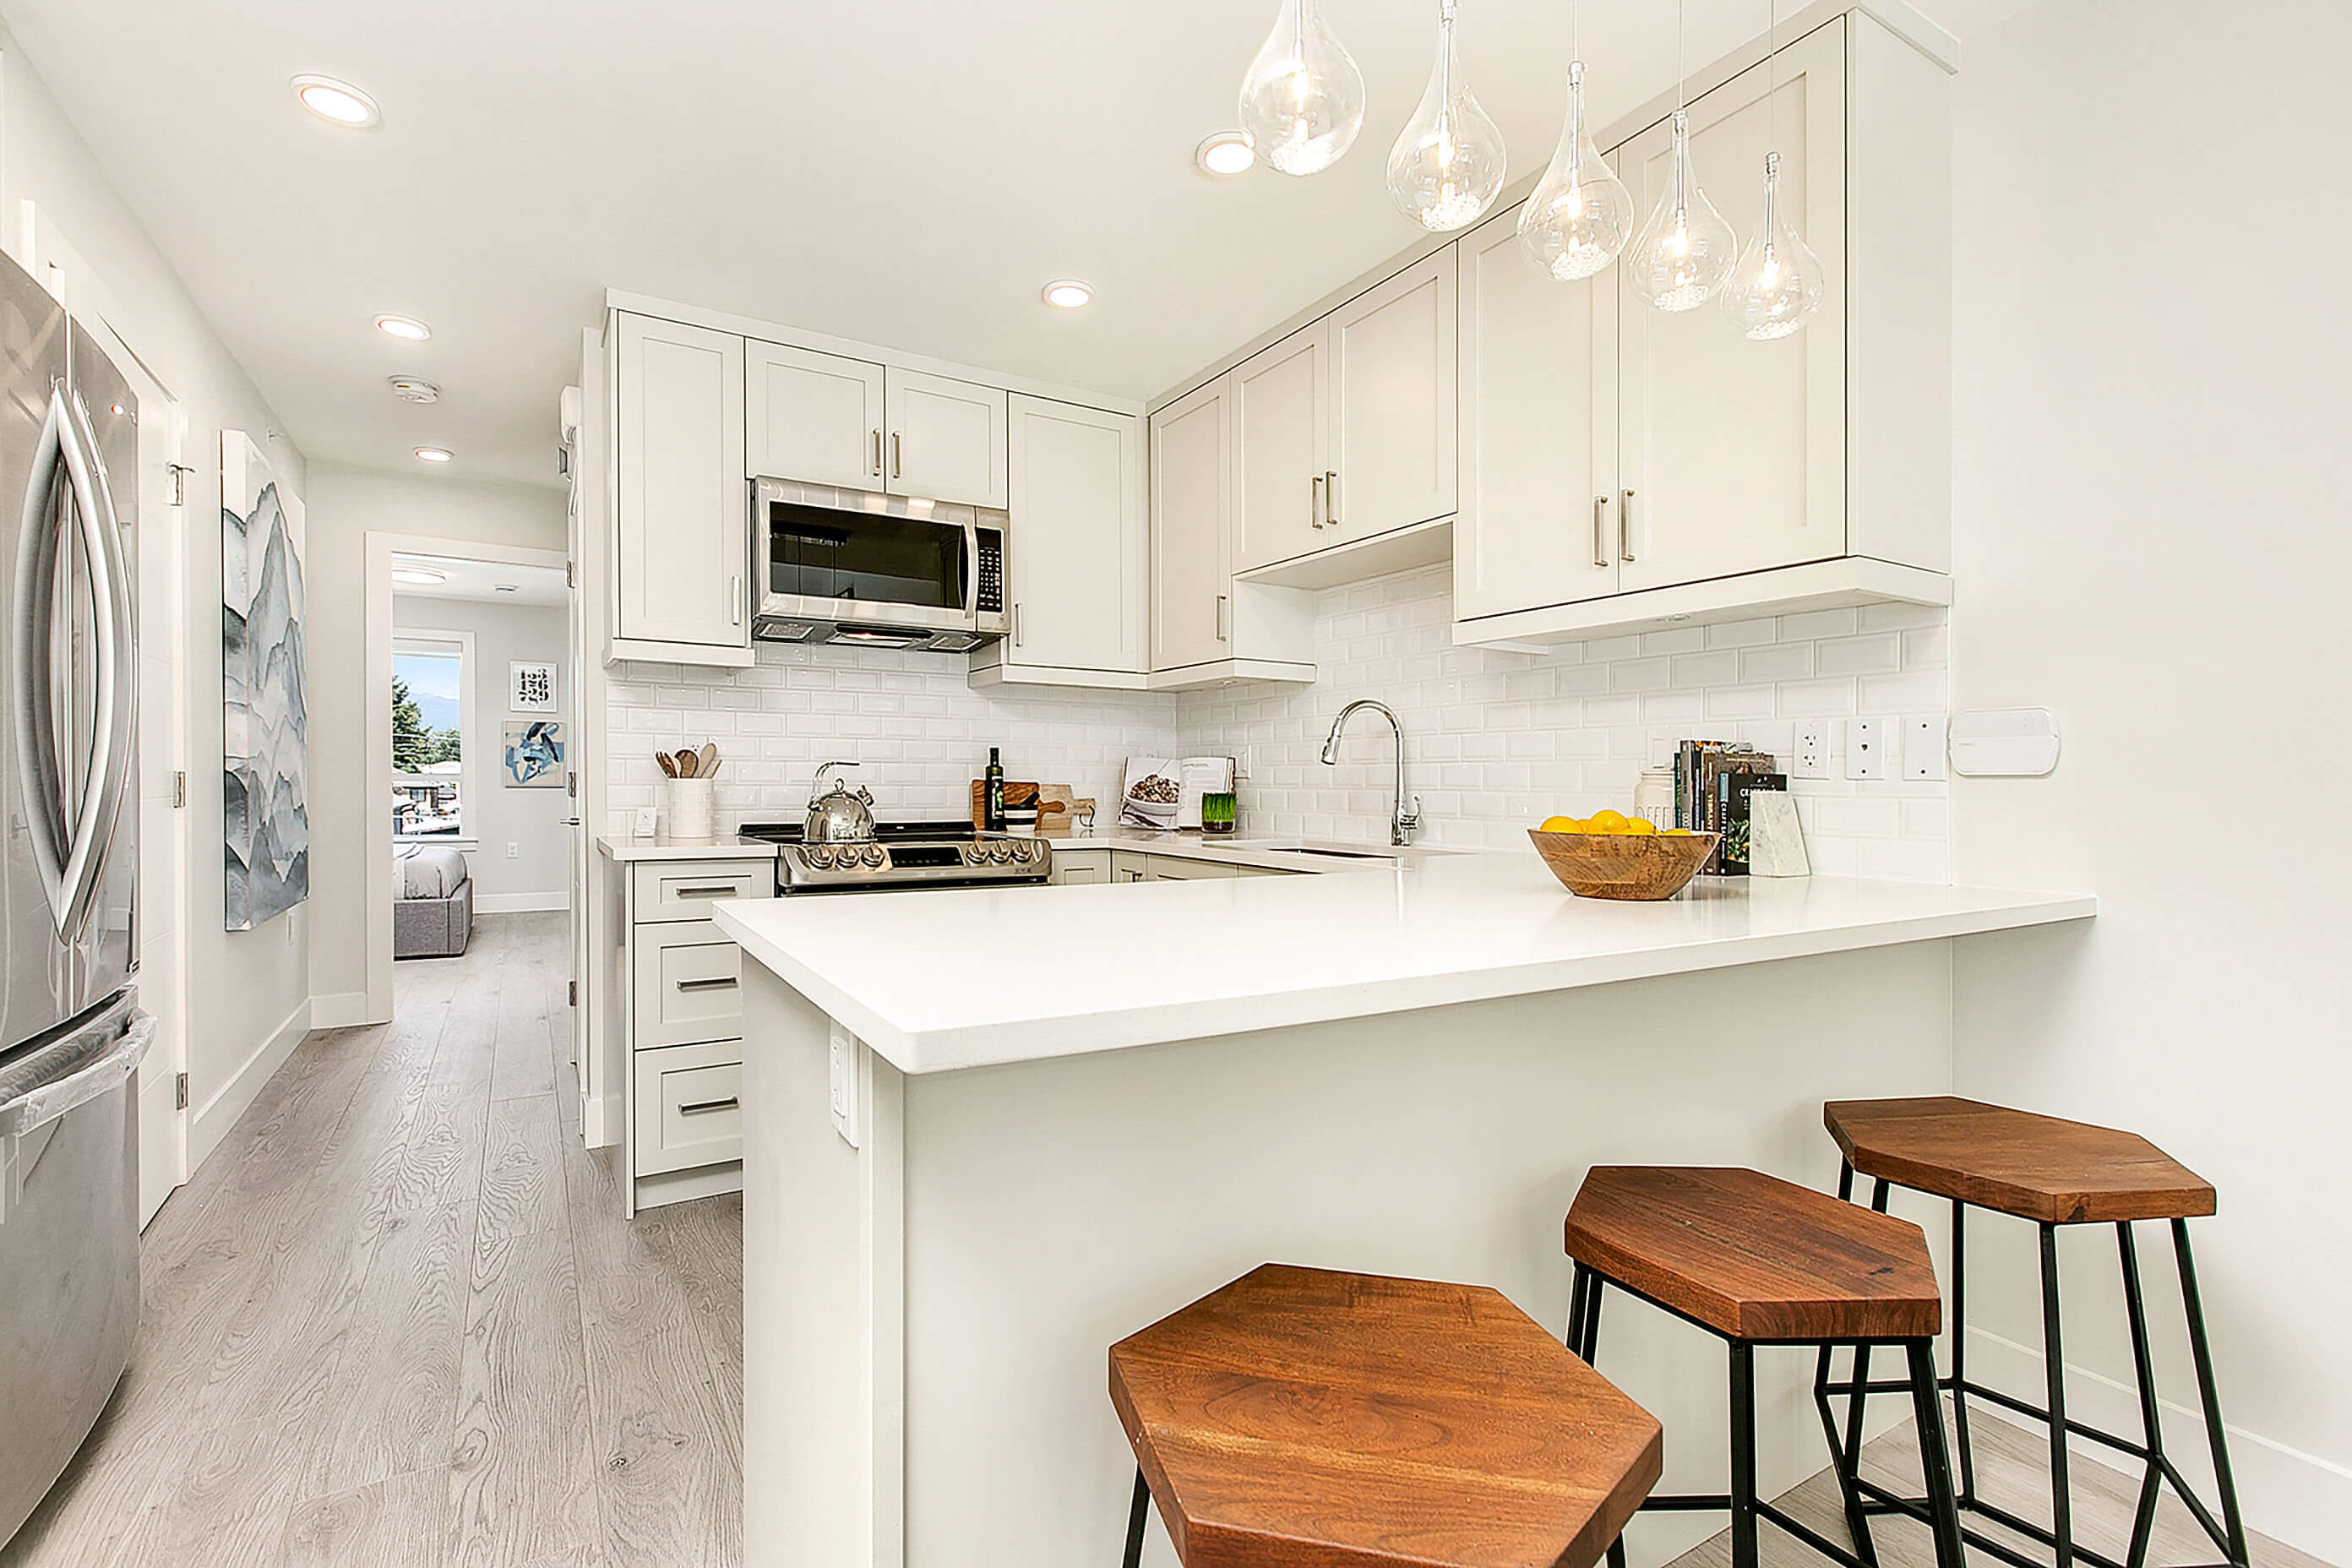 Kitchen Area - 2717 Horley St, Vancouver, BC V5R 4R7, Canada!